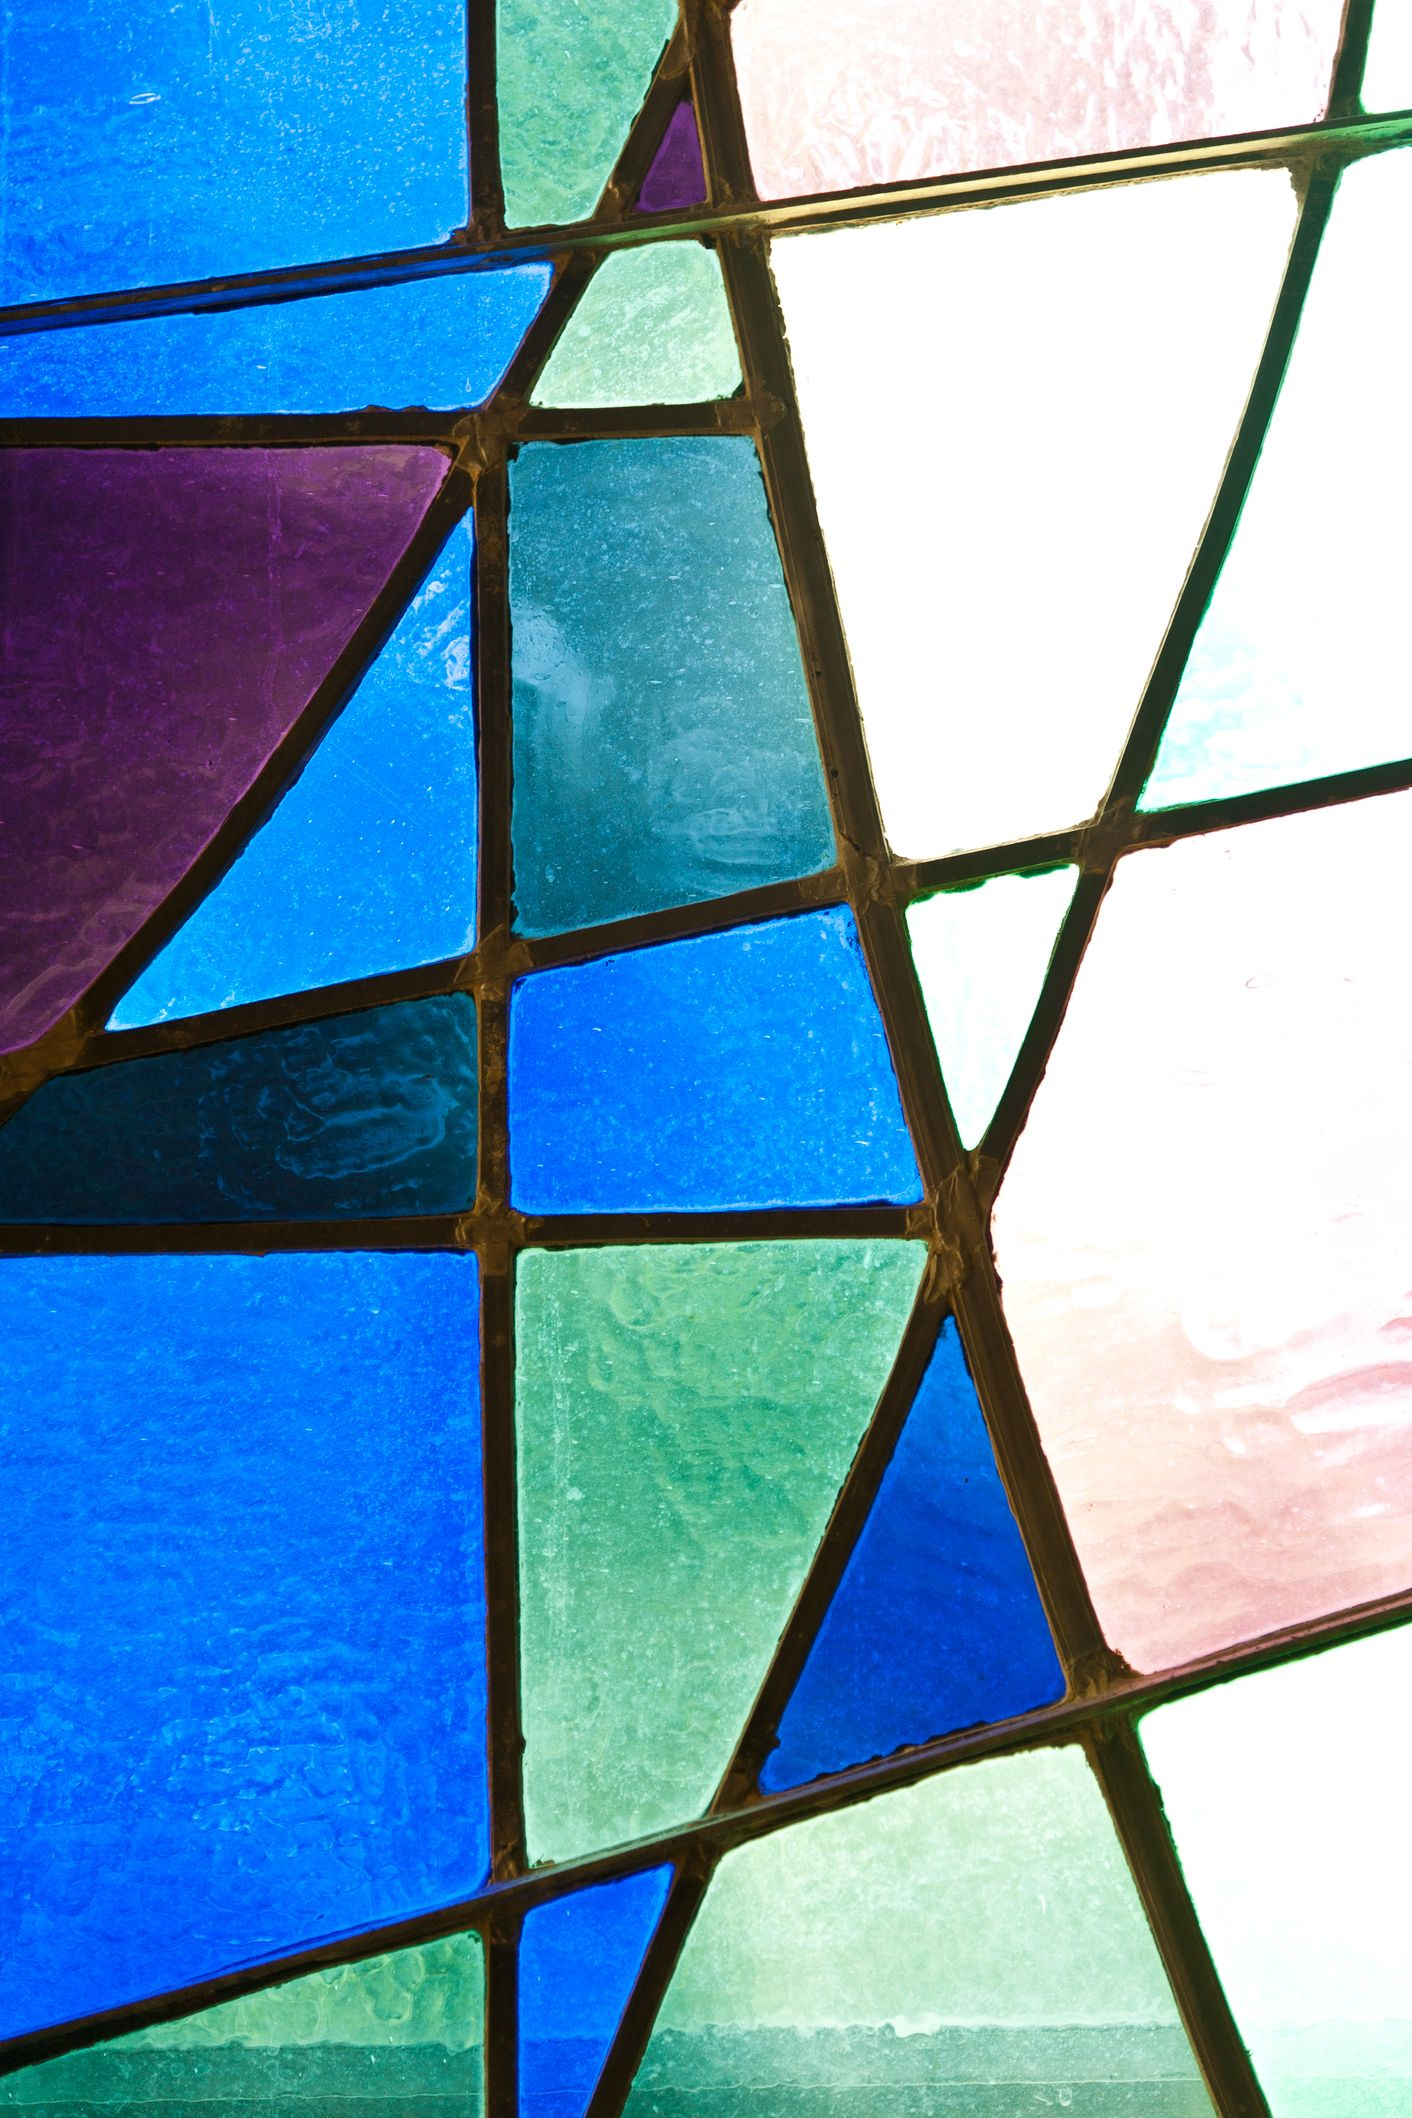 Stained Glass Window in Blue